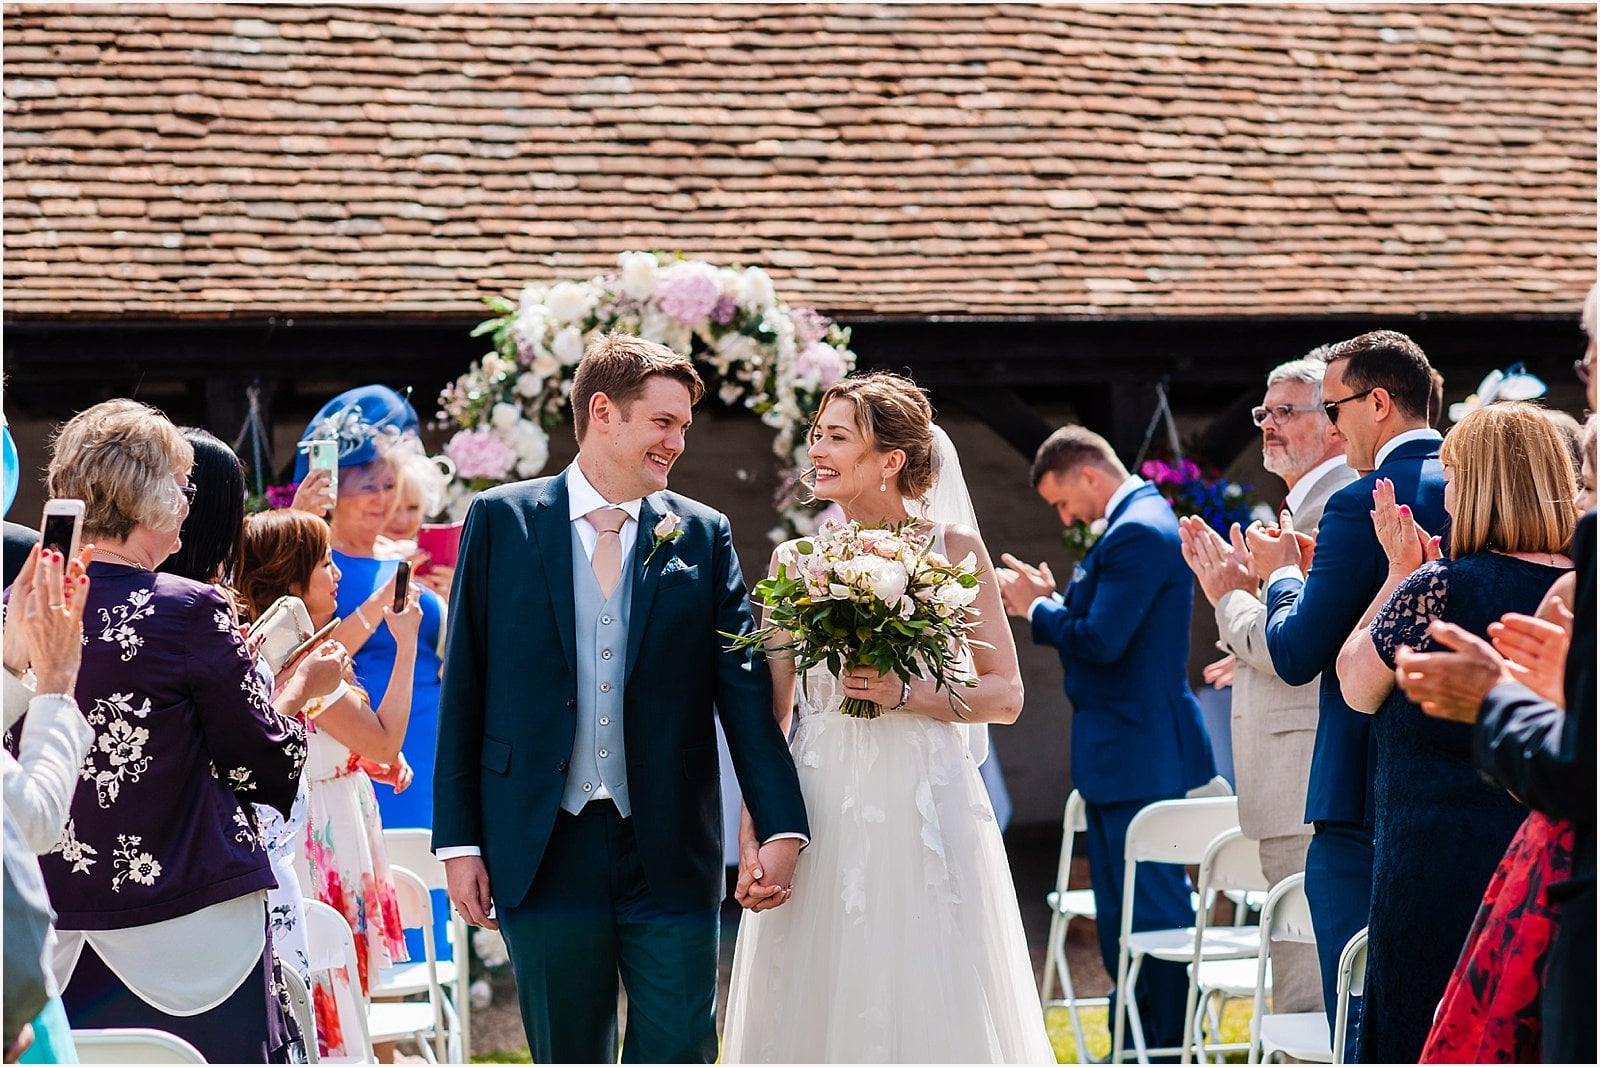 Beautiful Lillibrooke Manor Wedding - Ksenia & Iain 25